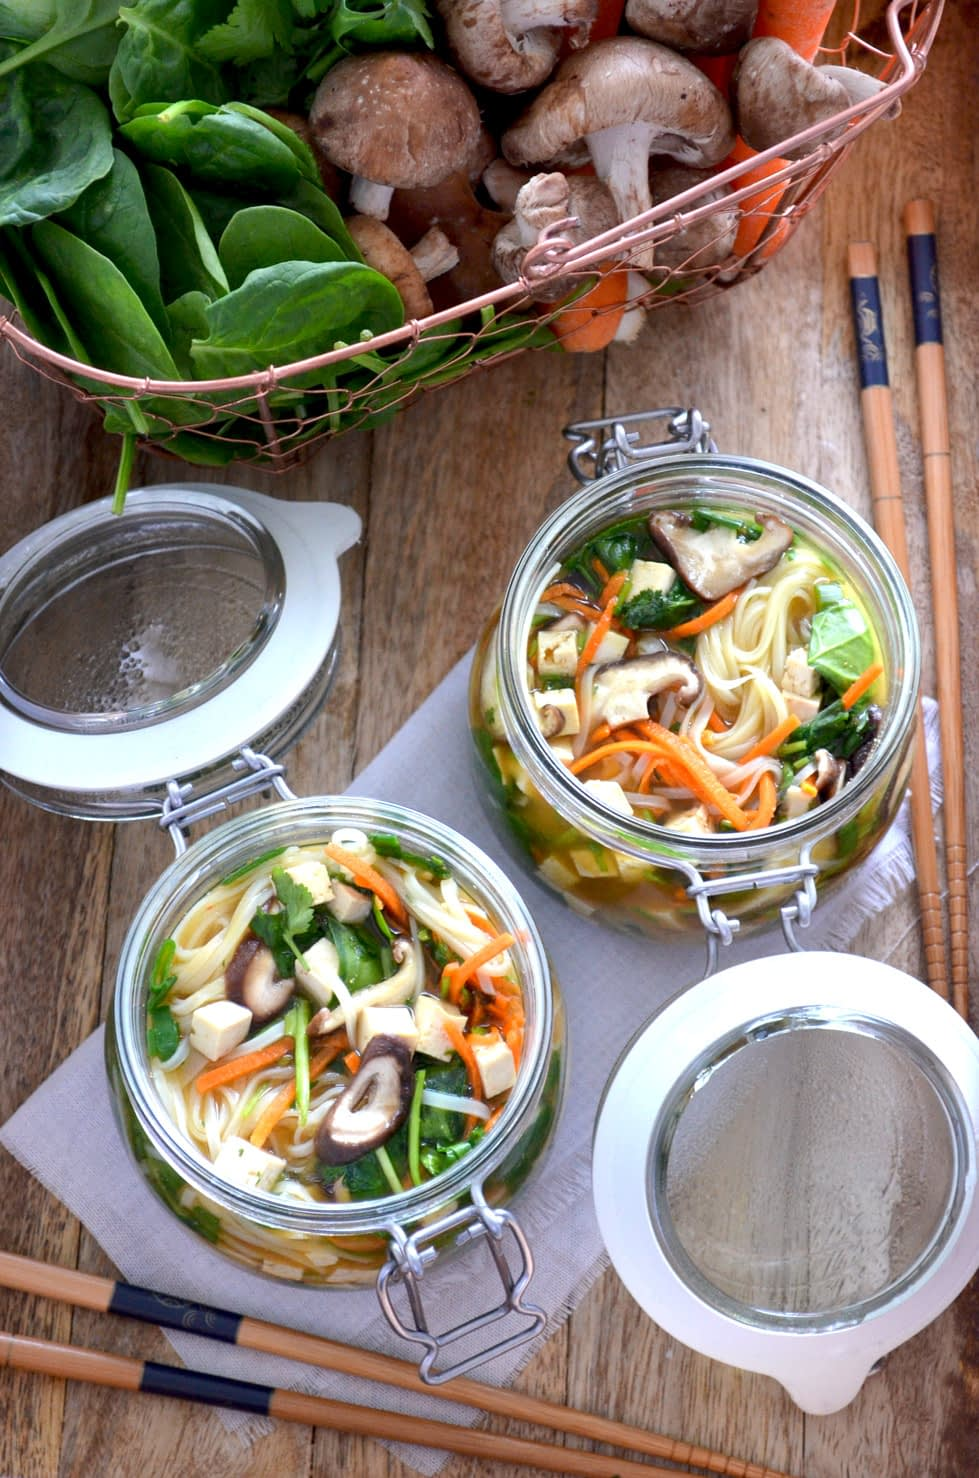 A recipe for Instant Noodle Soup Pots. Take the dry ingredients with you, e.g. to work. When you want your noodle soup, just pour boiling water in the jar, let sit for 2-3 minutes and you will have delicious, fresh, hot noodle soup. Recipe by That Healthy Kitchen